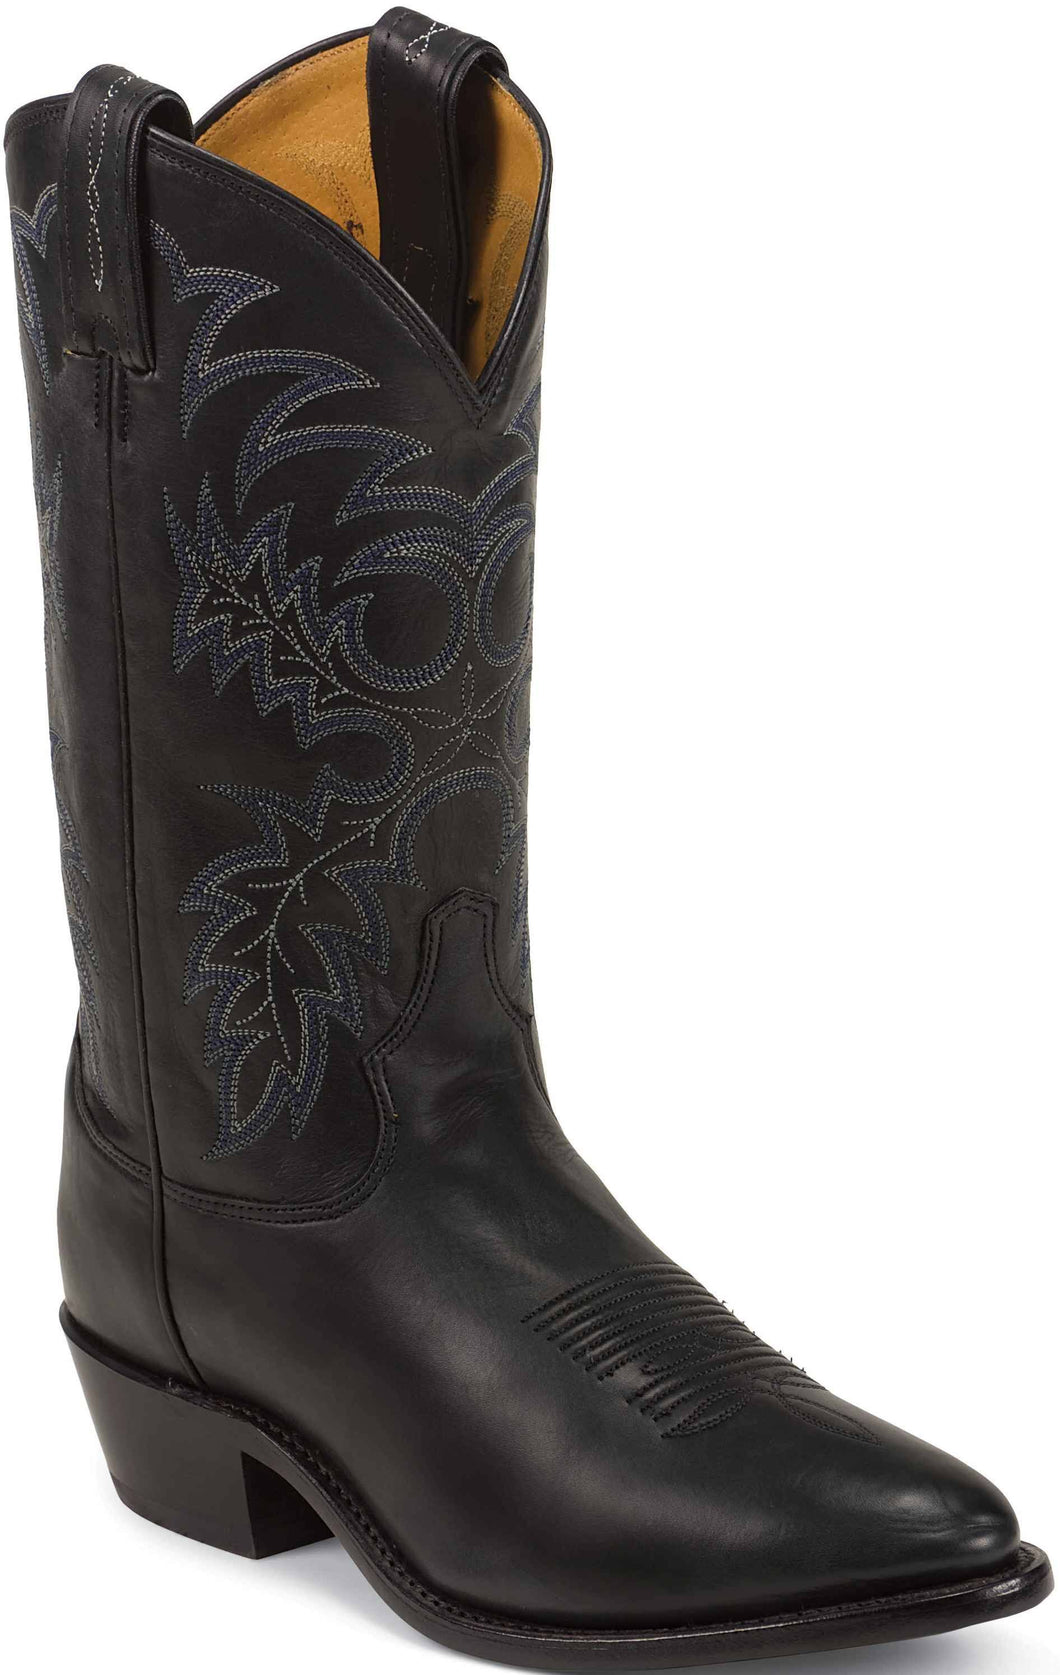 Men's Tony Lama Black Stallion Americana Boots